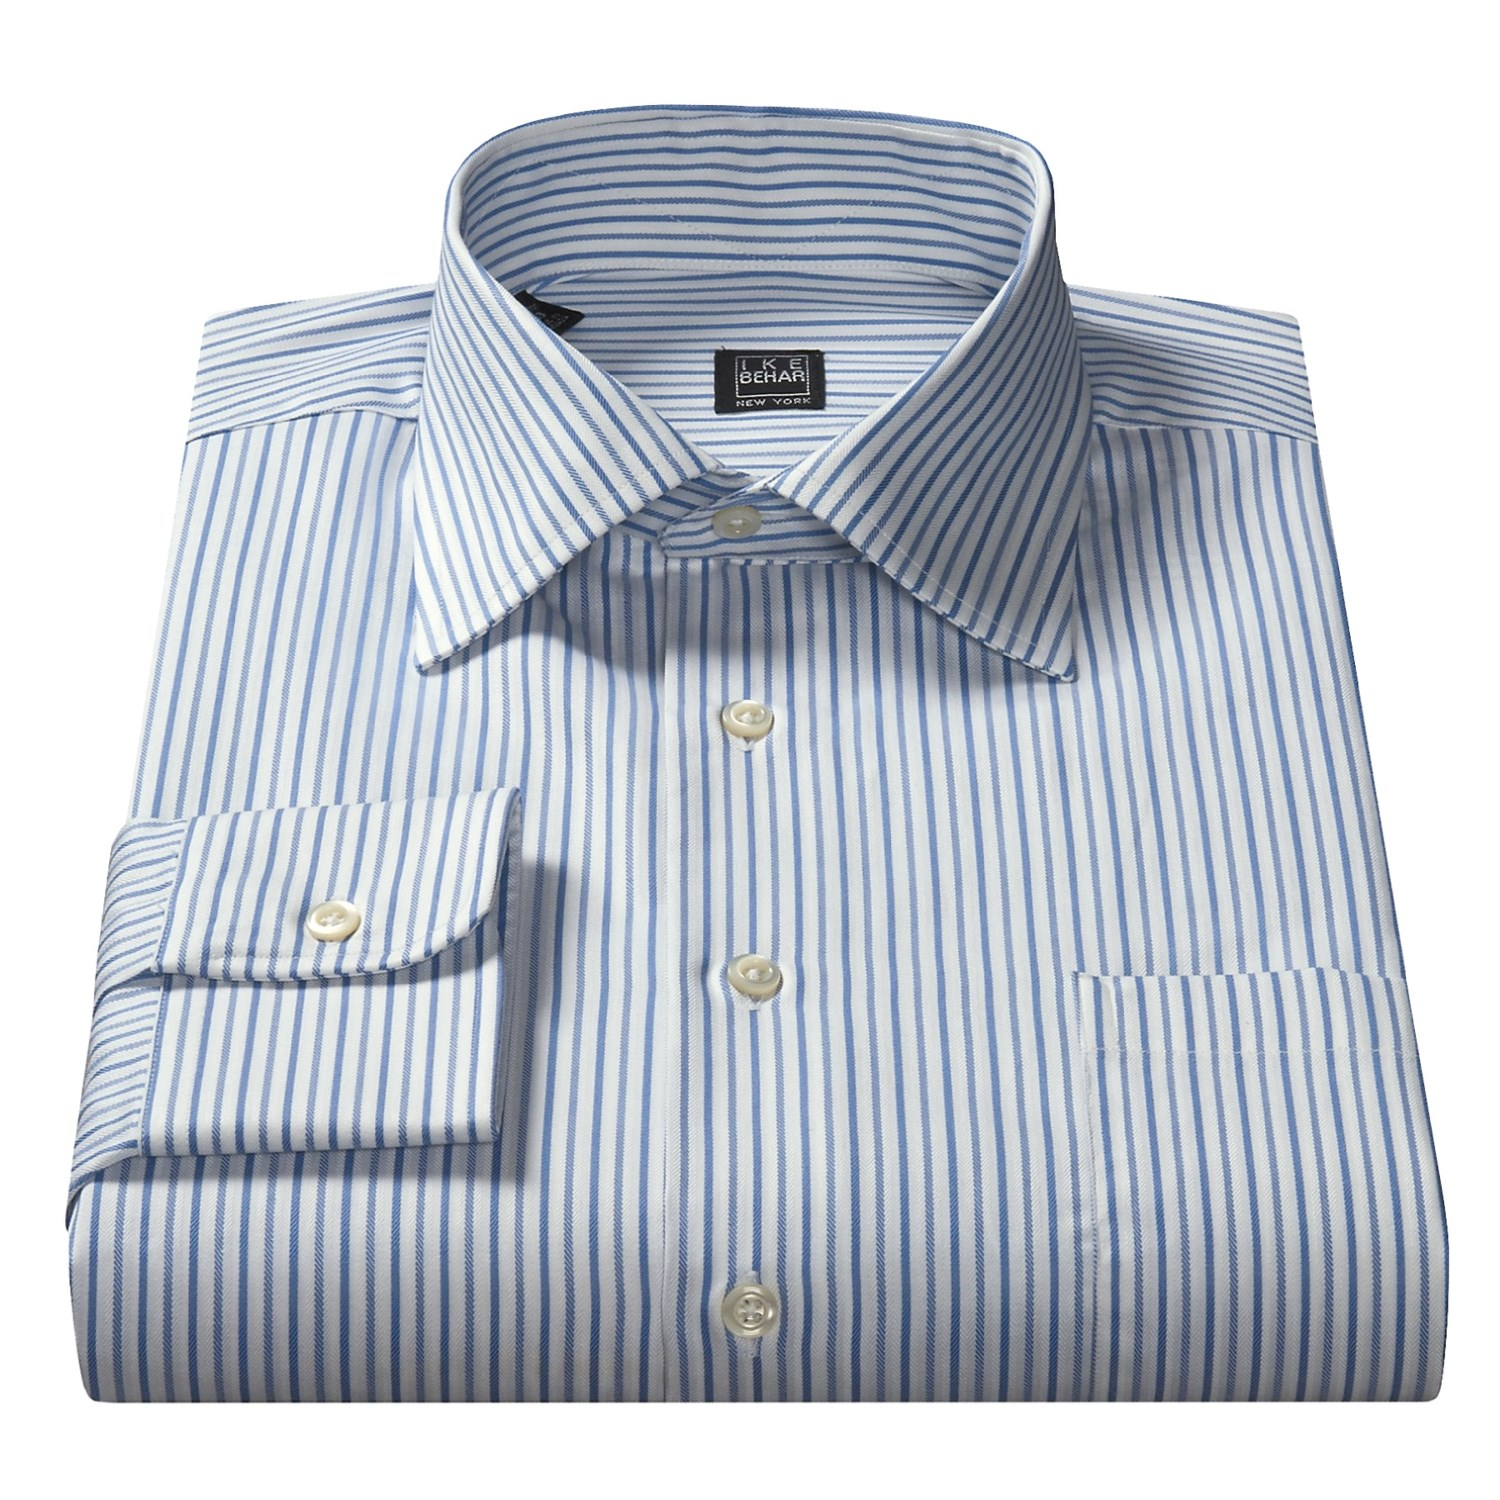 Ike behar egyptian cotton dress shirt for men 35490 for Mens egyptian cotton dress shirts